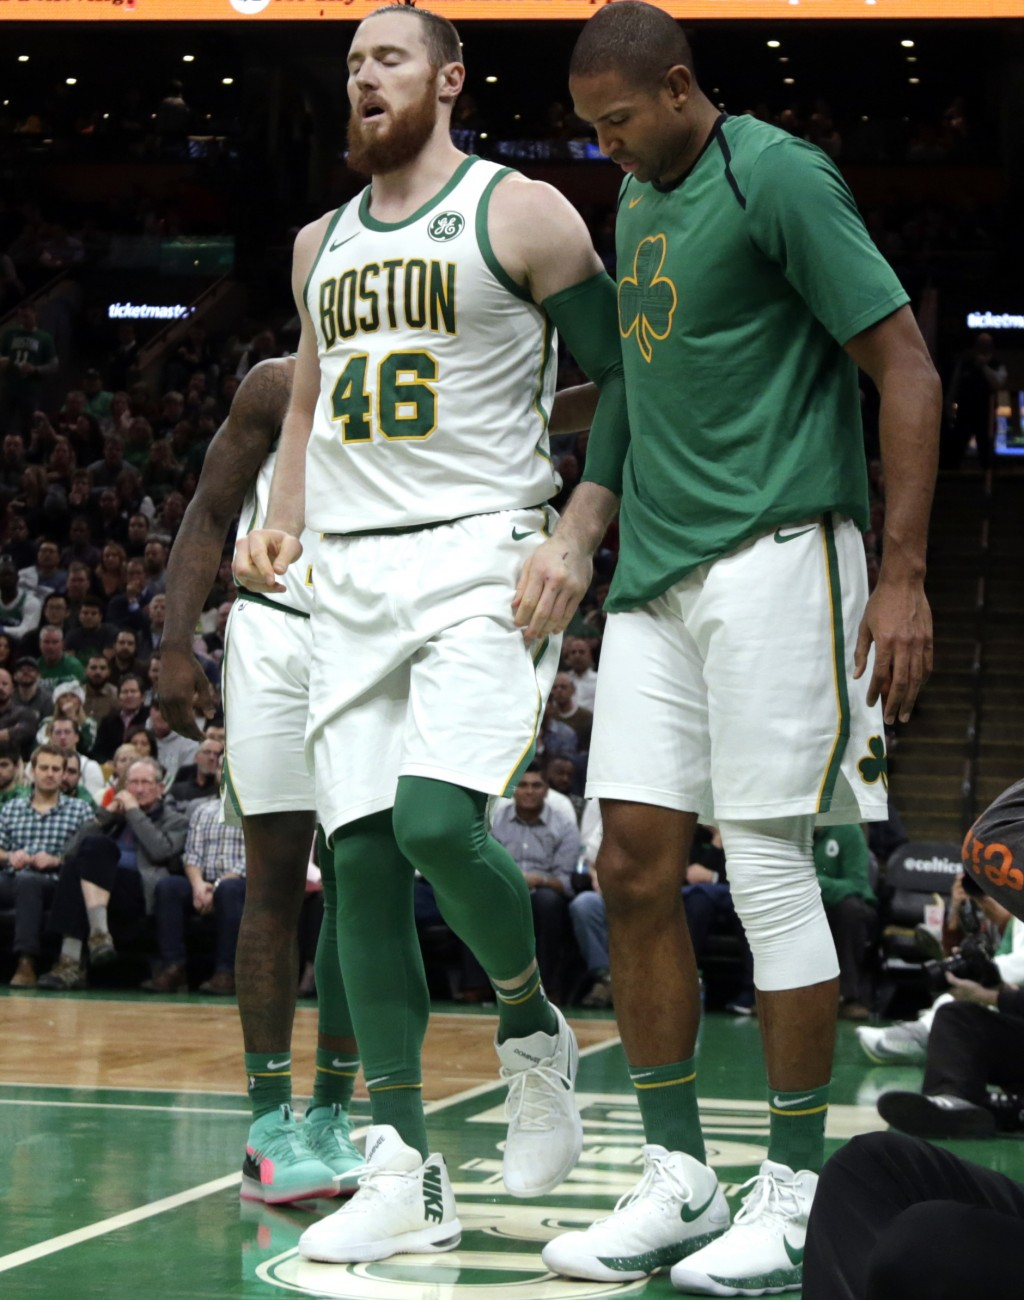 Boston Celtics center Aron Baynes (46) limps off the court with an injury as teammate Al Horford, right, walks with him in the first quarter of an NBA